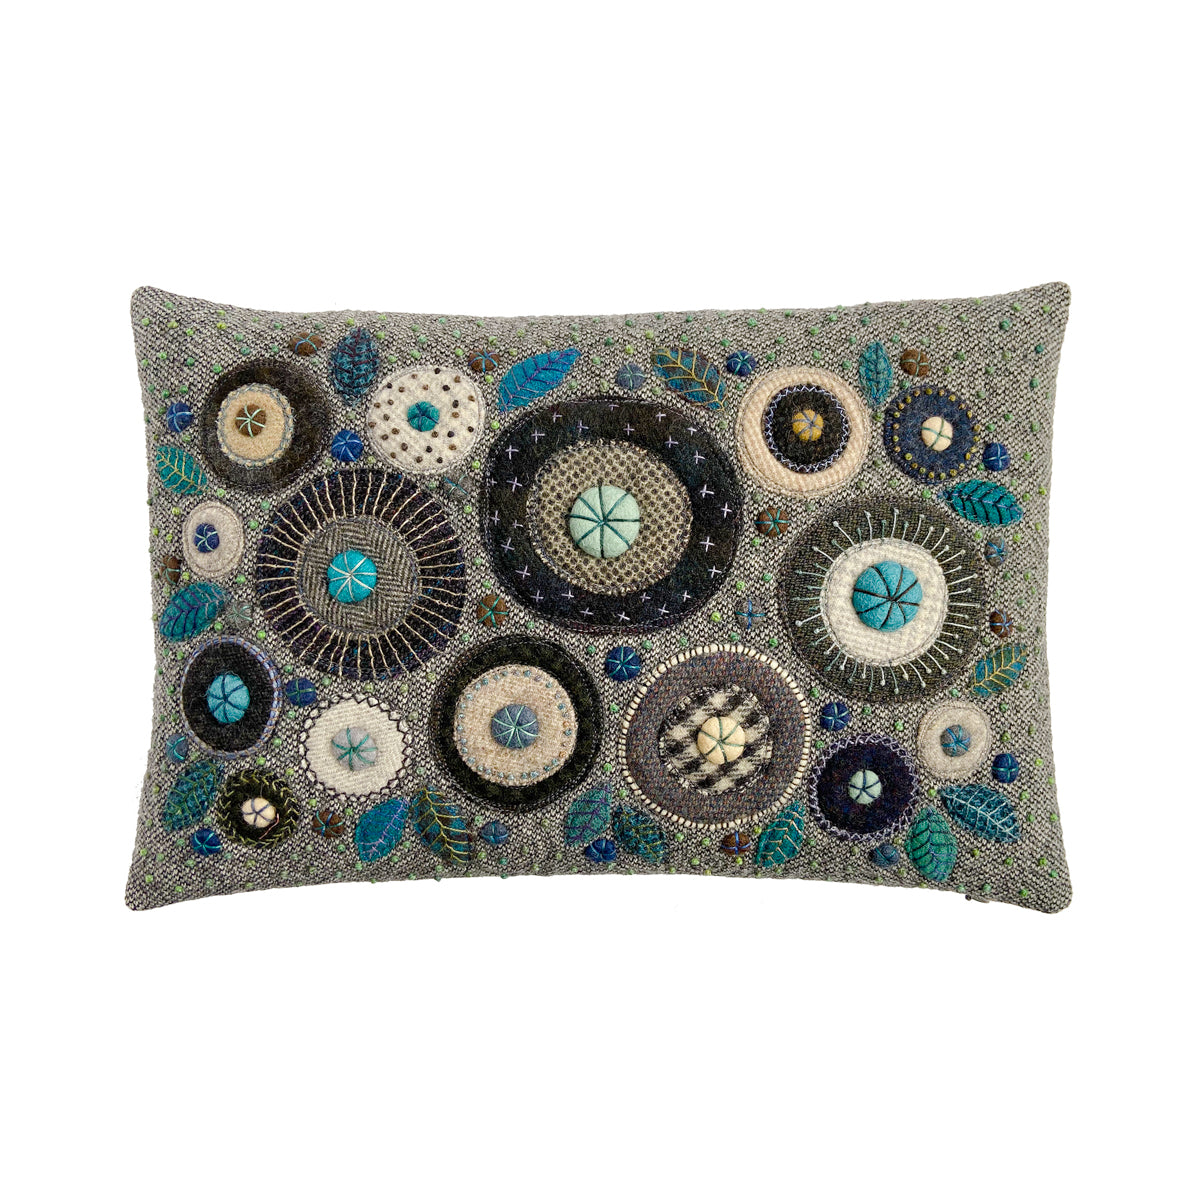 George Street Fancy Stitches Cushion • 12x18 A